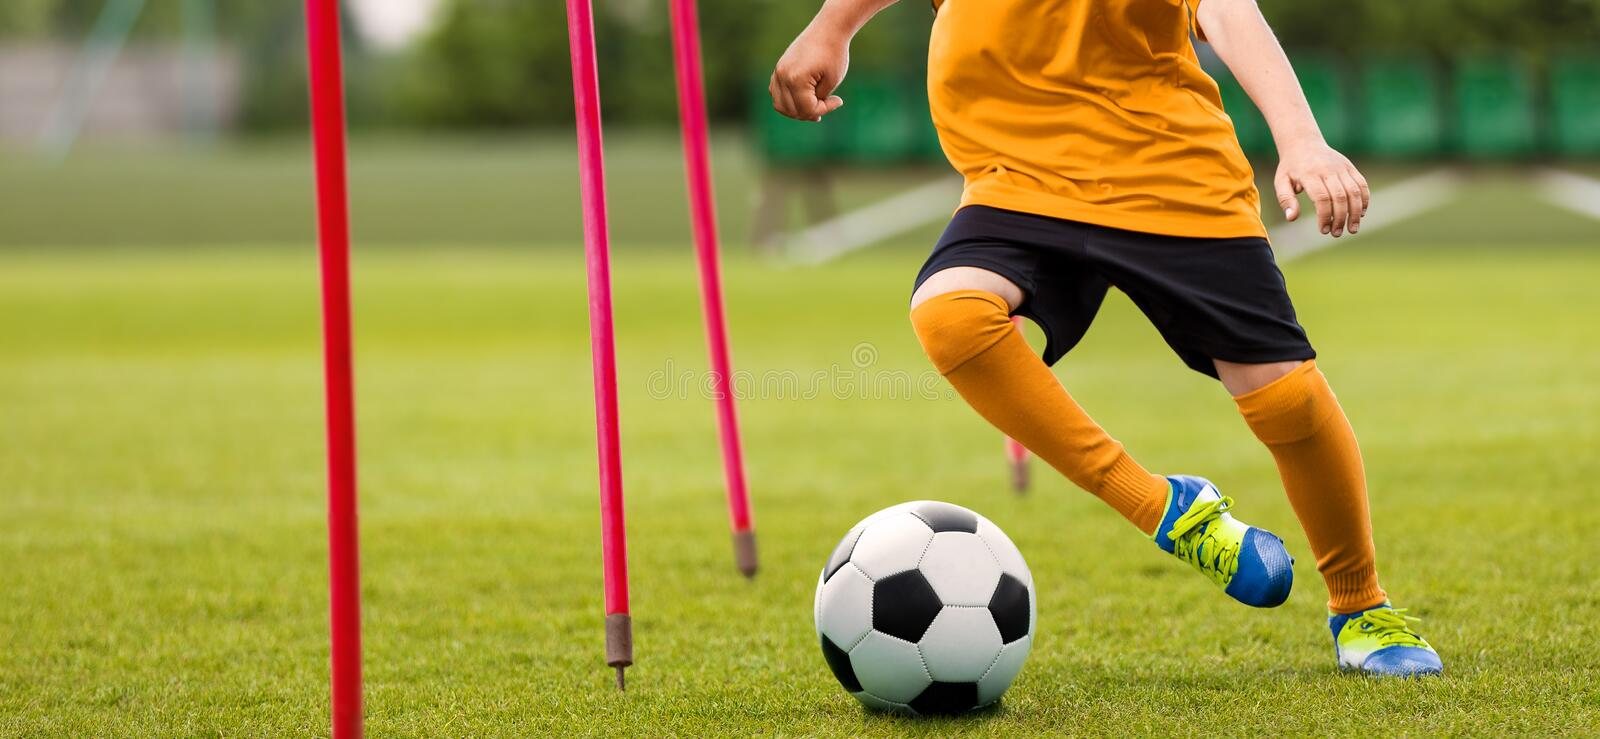 Soccer Player with Soccer Ball Running Slalom Around Training Sticks. Football Speed Training royalty free stock photo